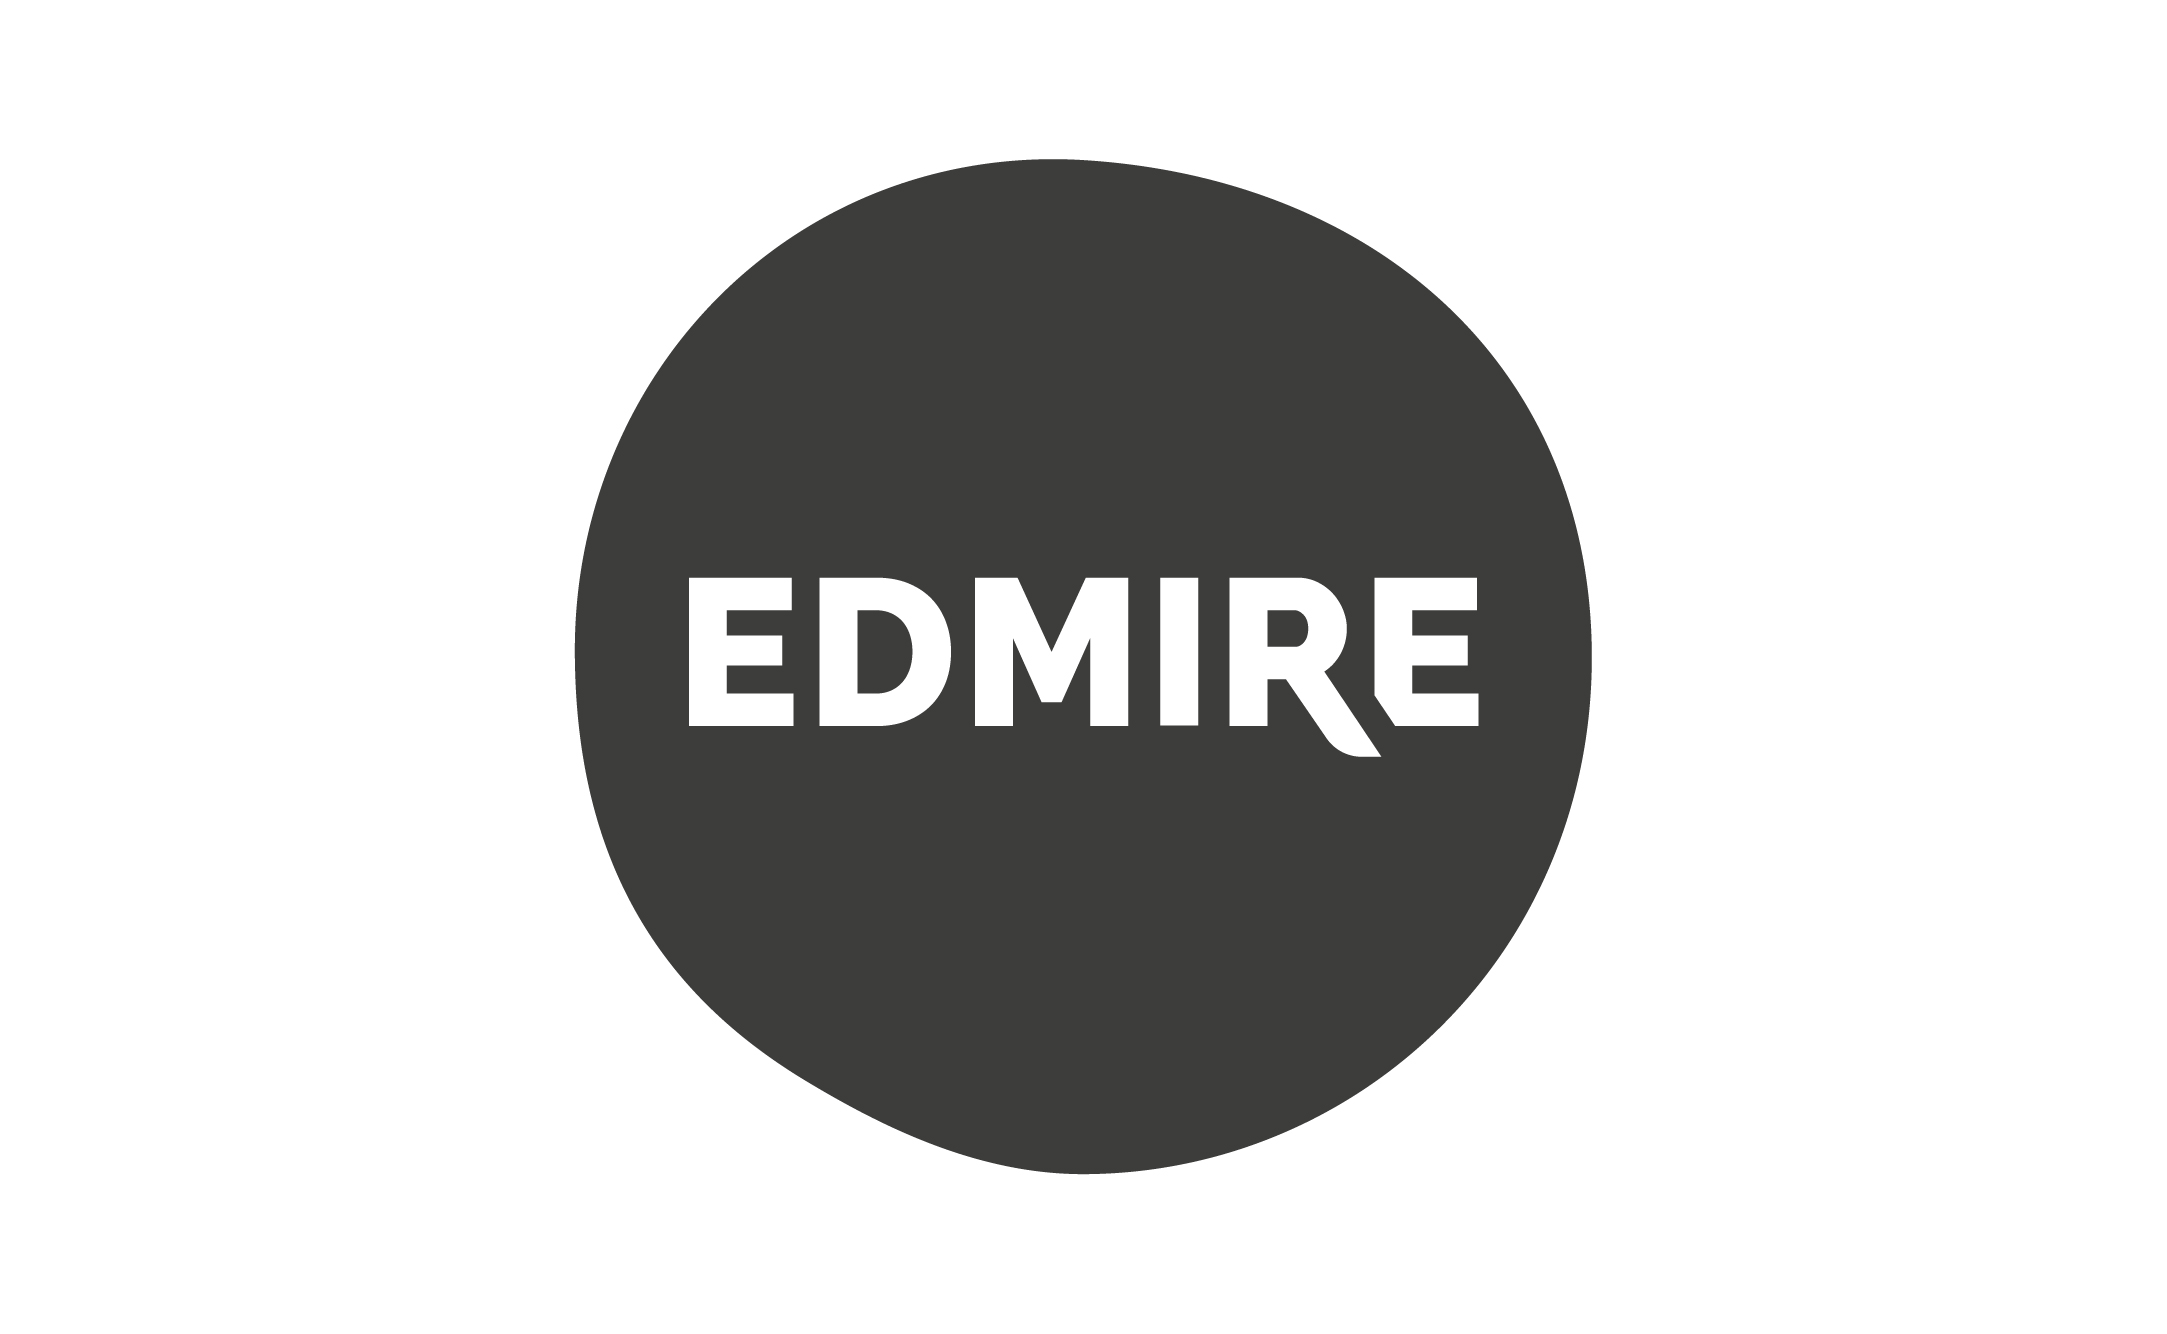 Logo for EDMIRE